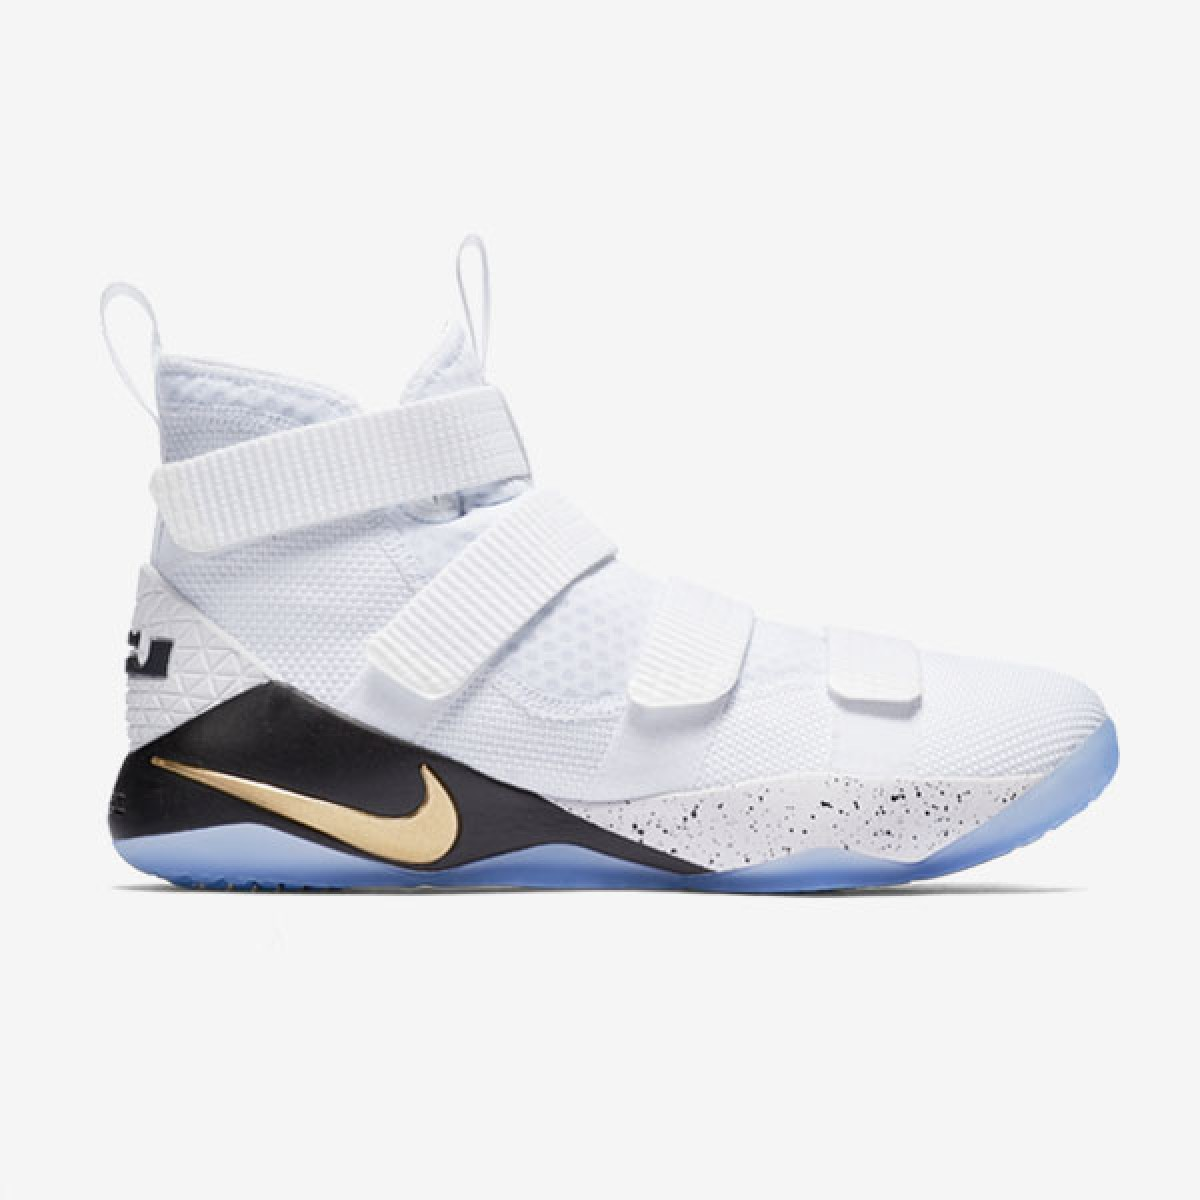 Nike Lebron Soldier XI 'Court General'